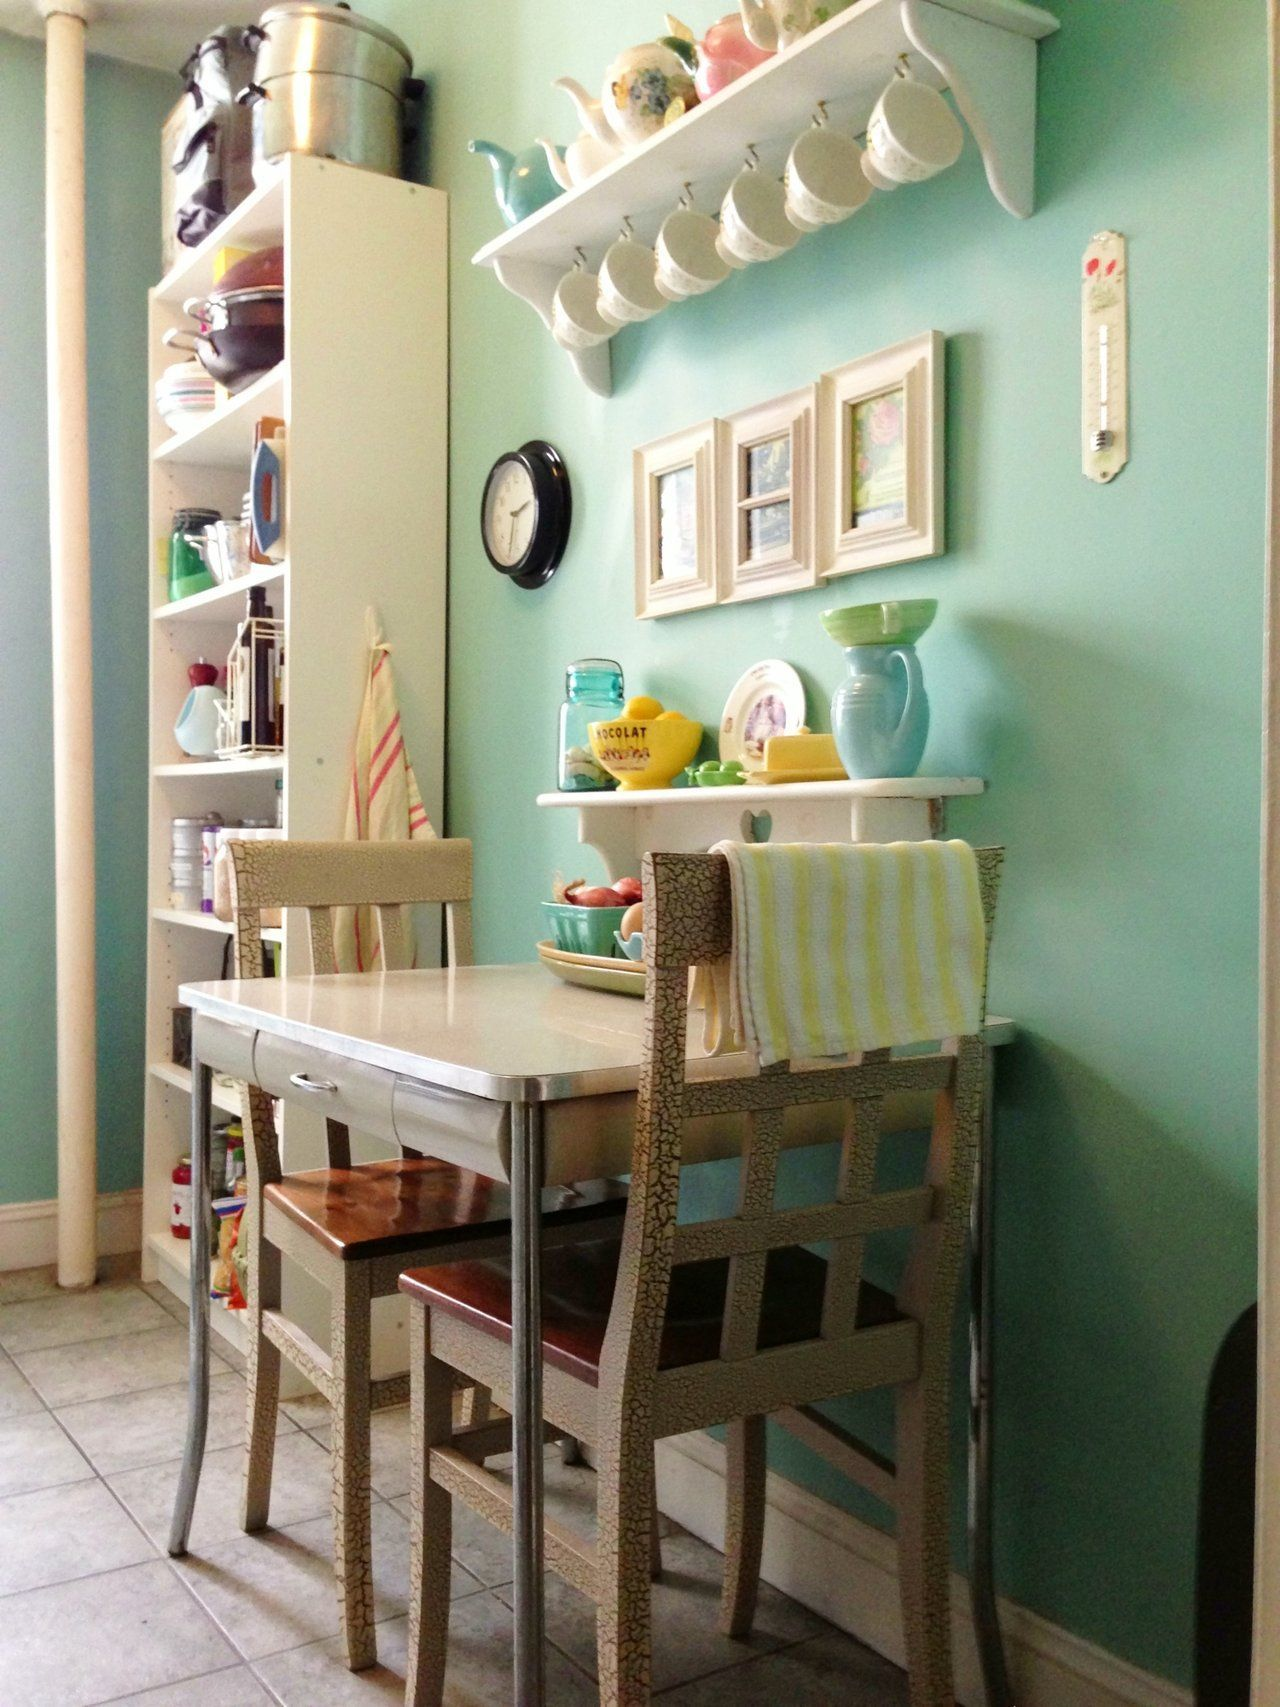 15 Small Space Kitchens Tips And Storage Solutions That Inspired Us Small Space Kitchen Small Spaces Small Kitchen Decor